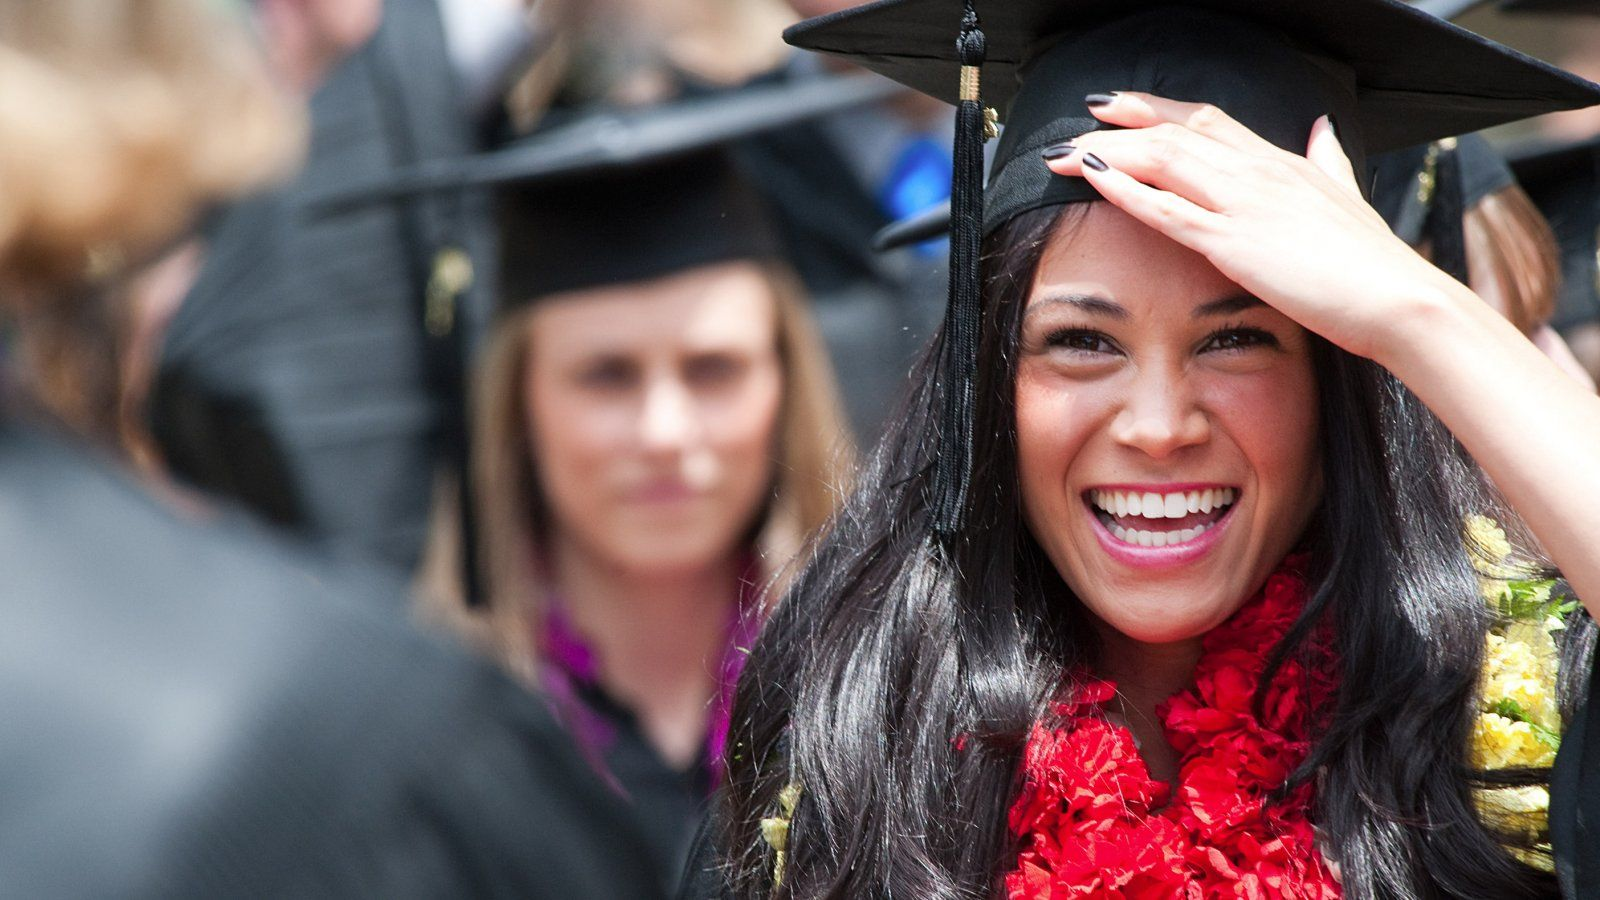 Female student stands out of a crowd at graduation as she holds her cap and smiles in celebration